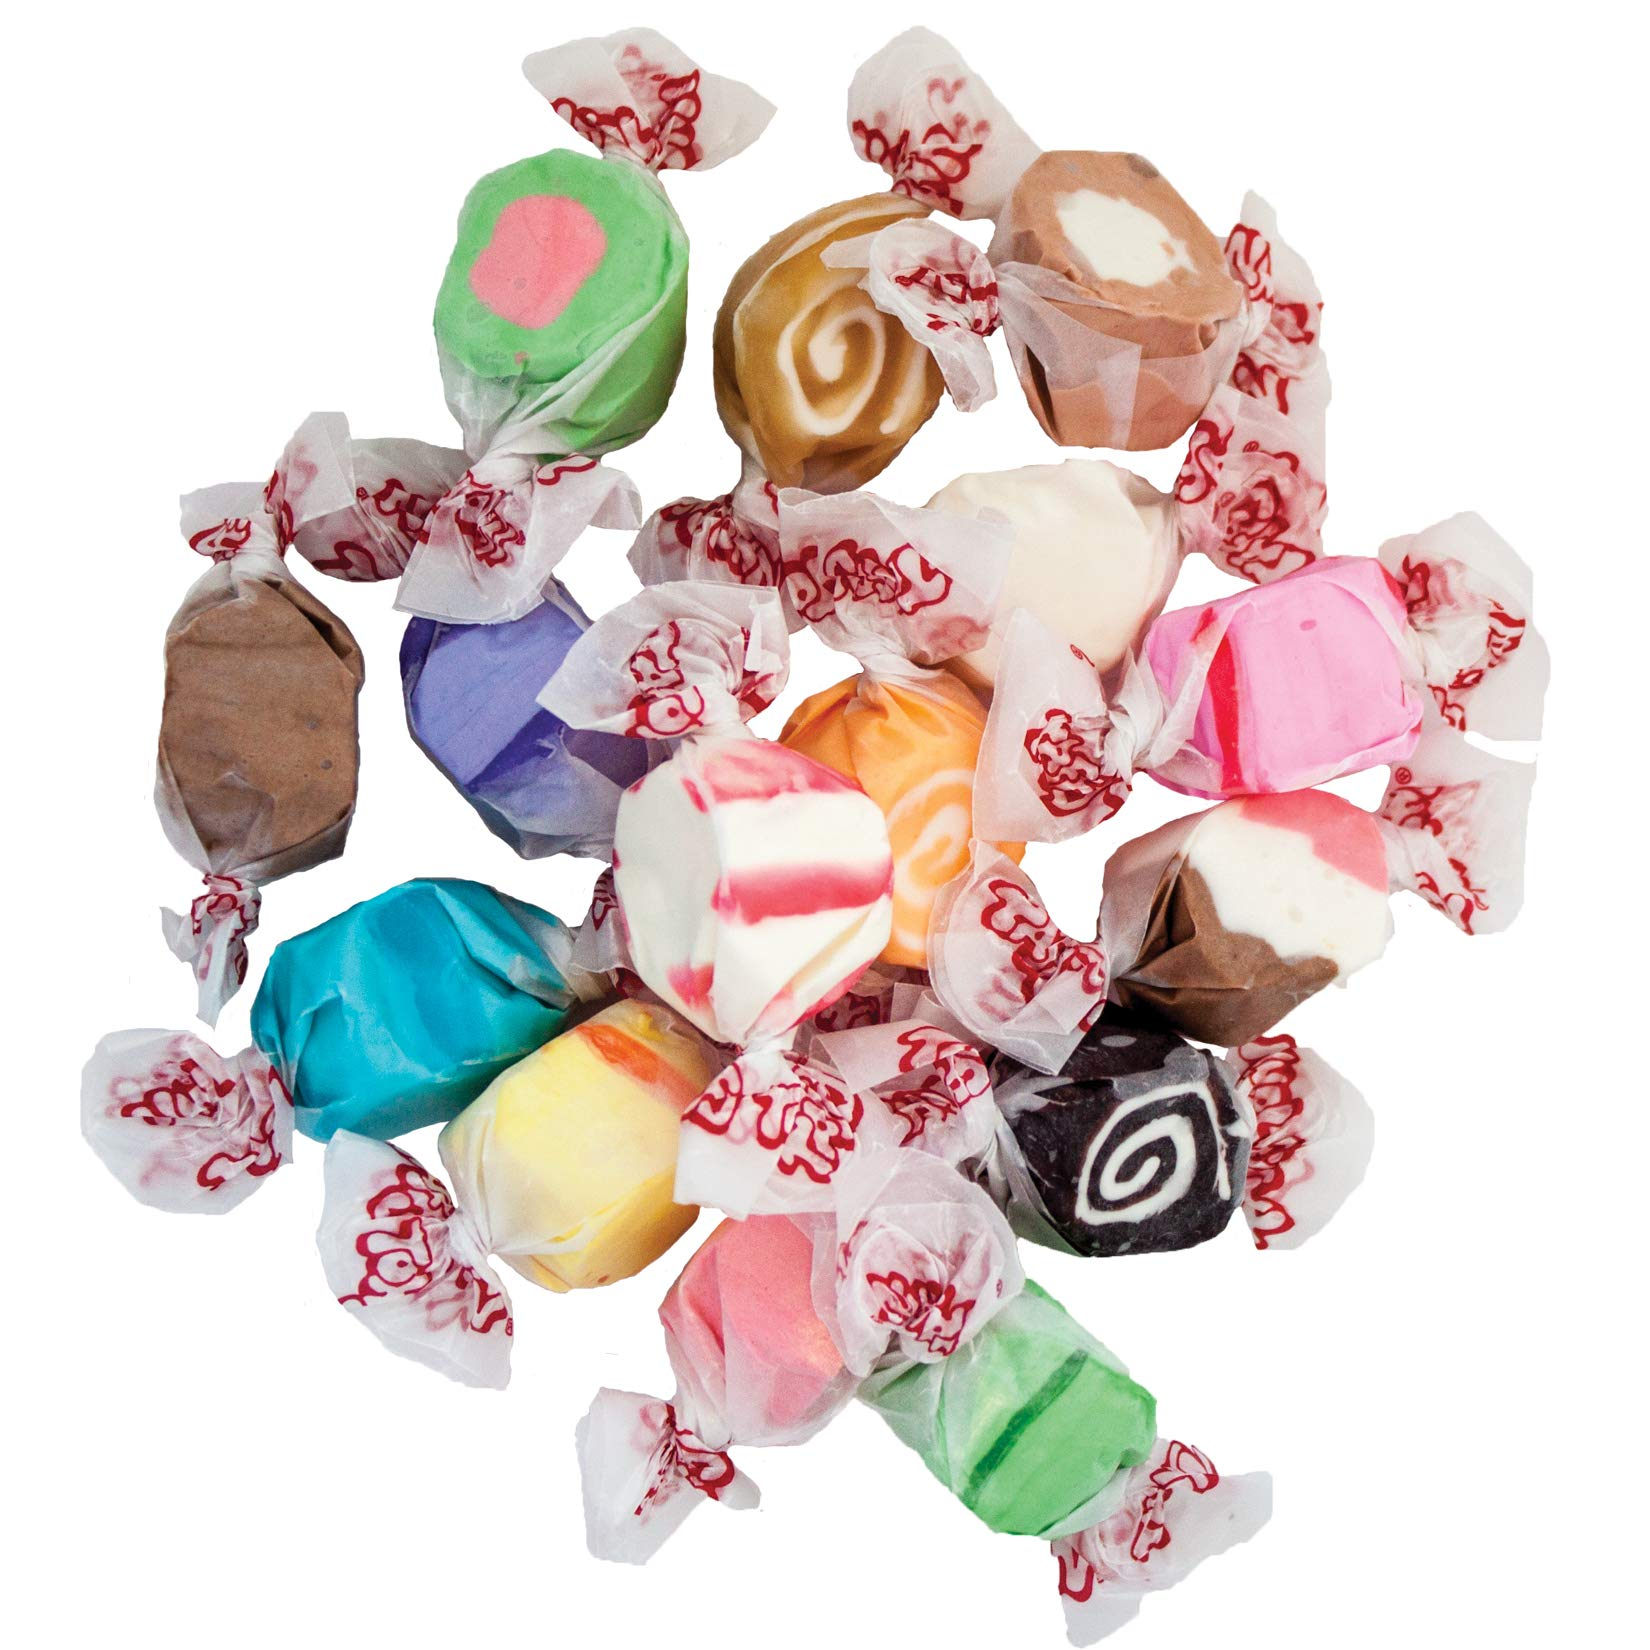 Taffy Town Salt Water Taffy, 5 LB Assorted Flavors by Taffy Town